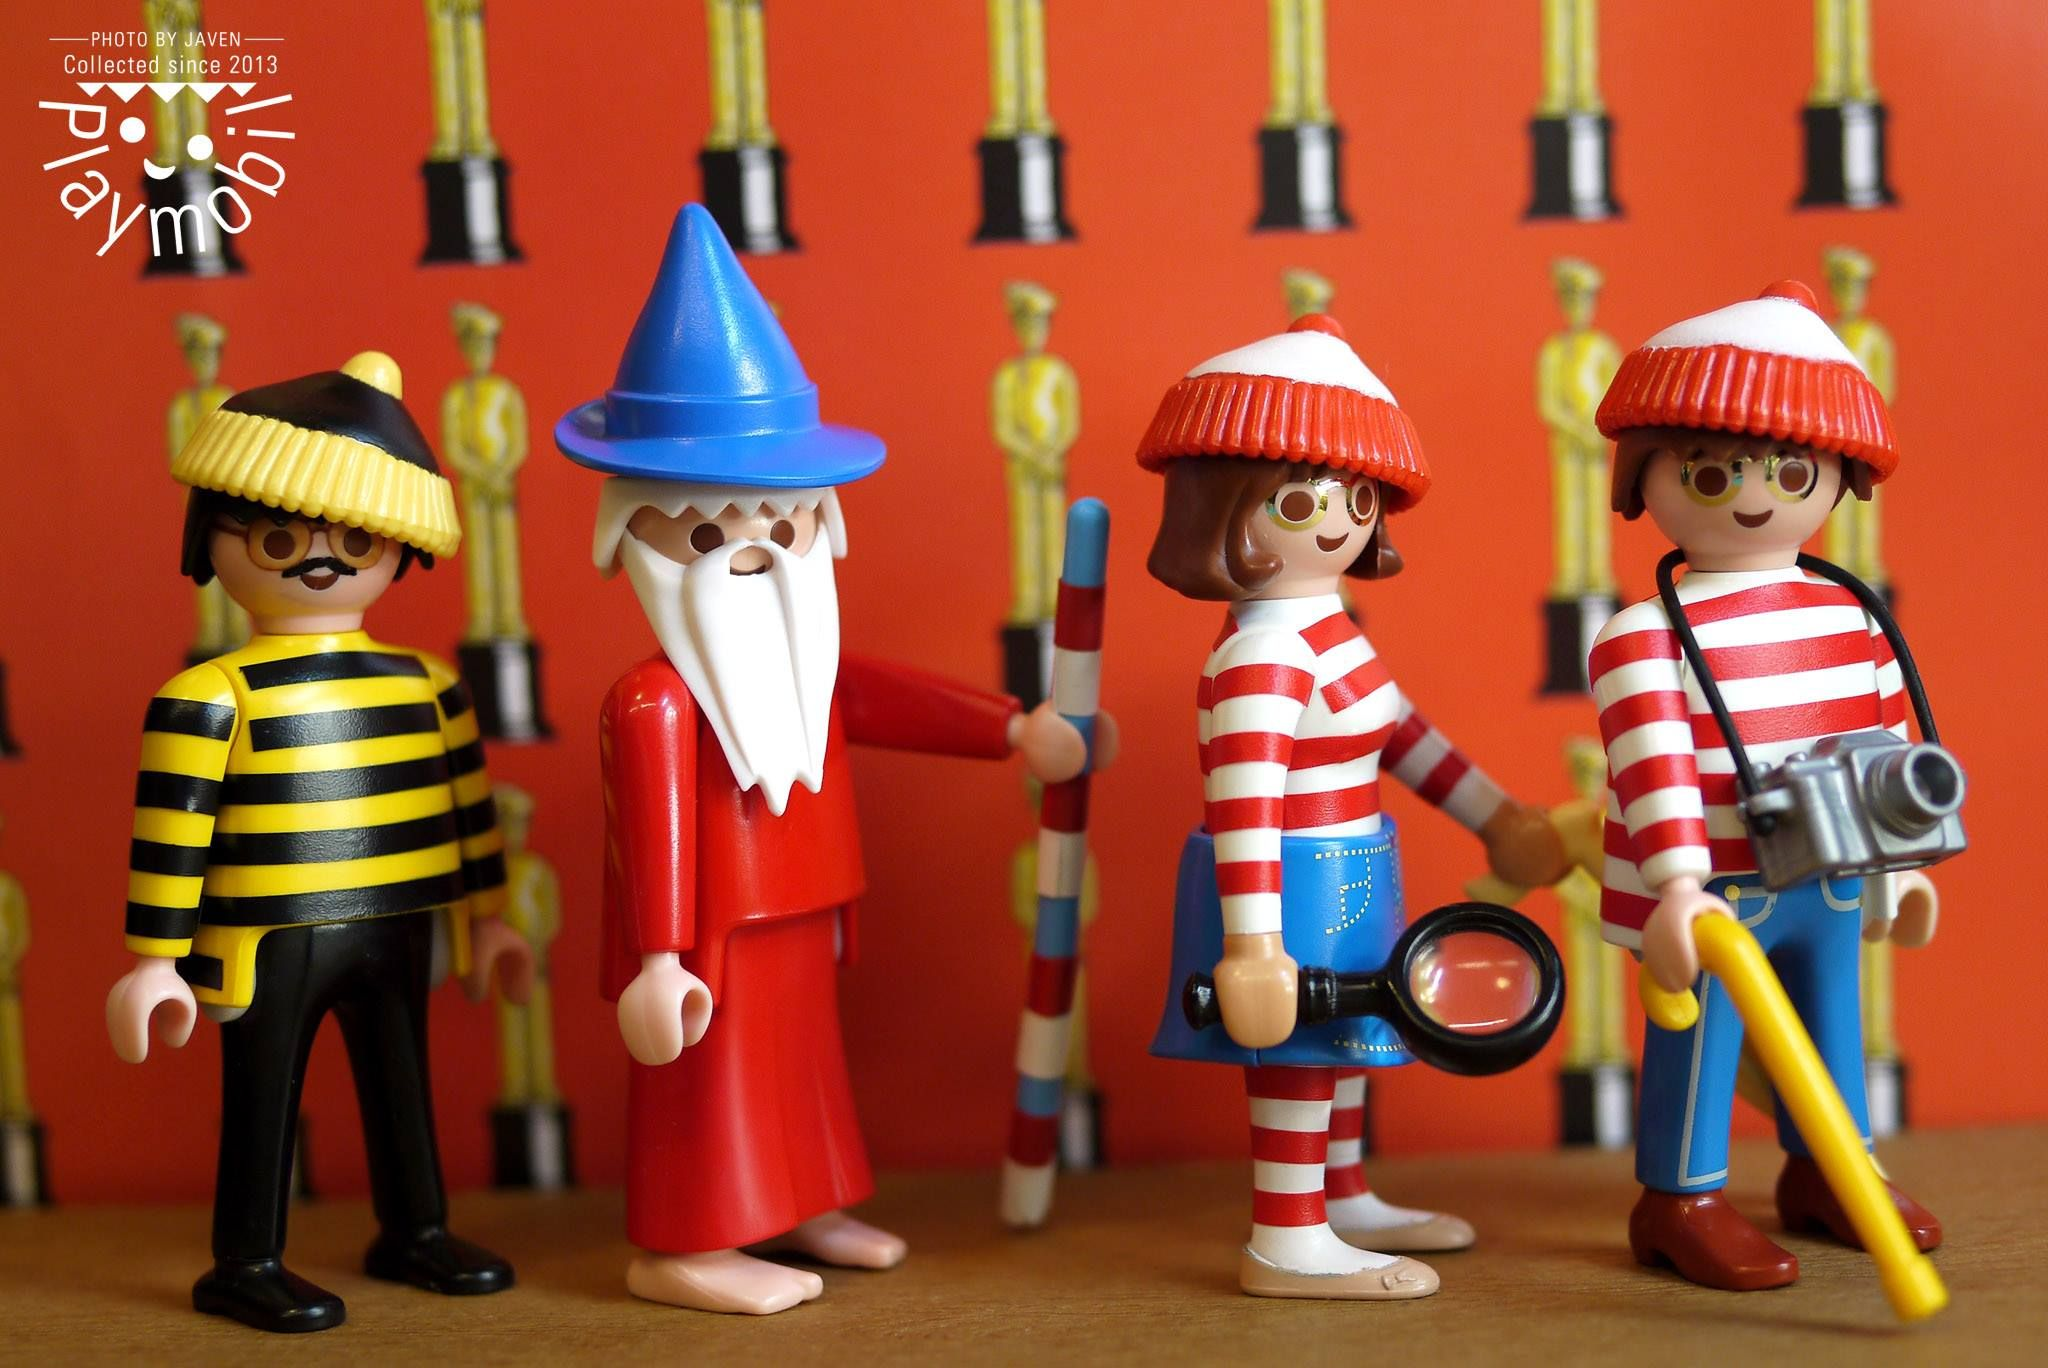 Where's Waldo Custom Playmobil Figues Image only - Links to FB